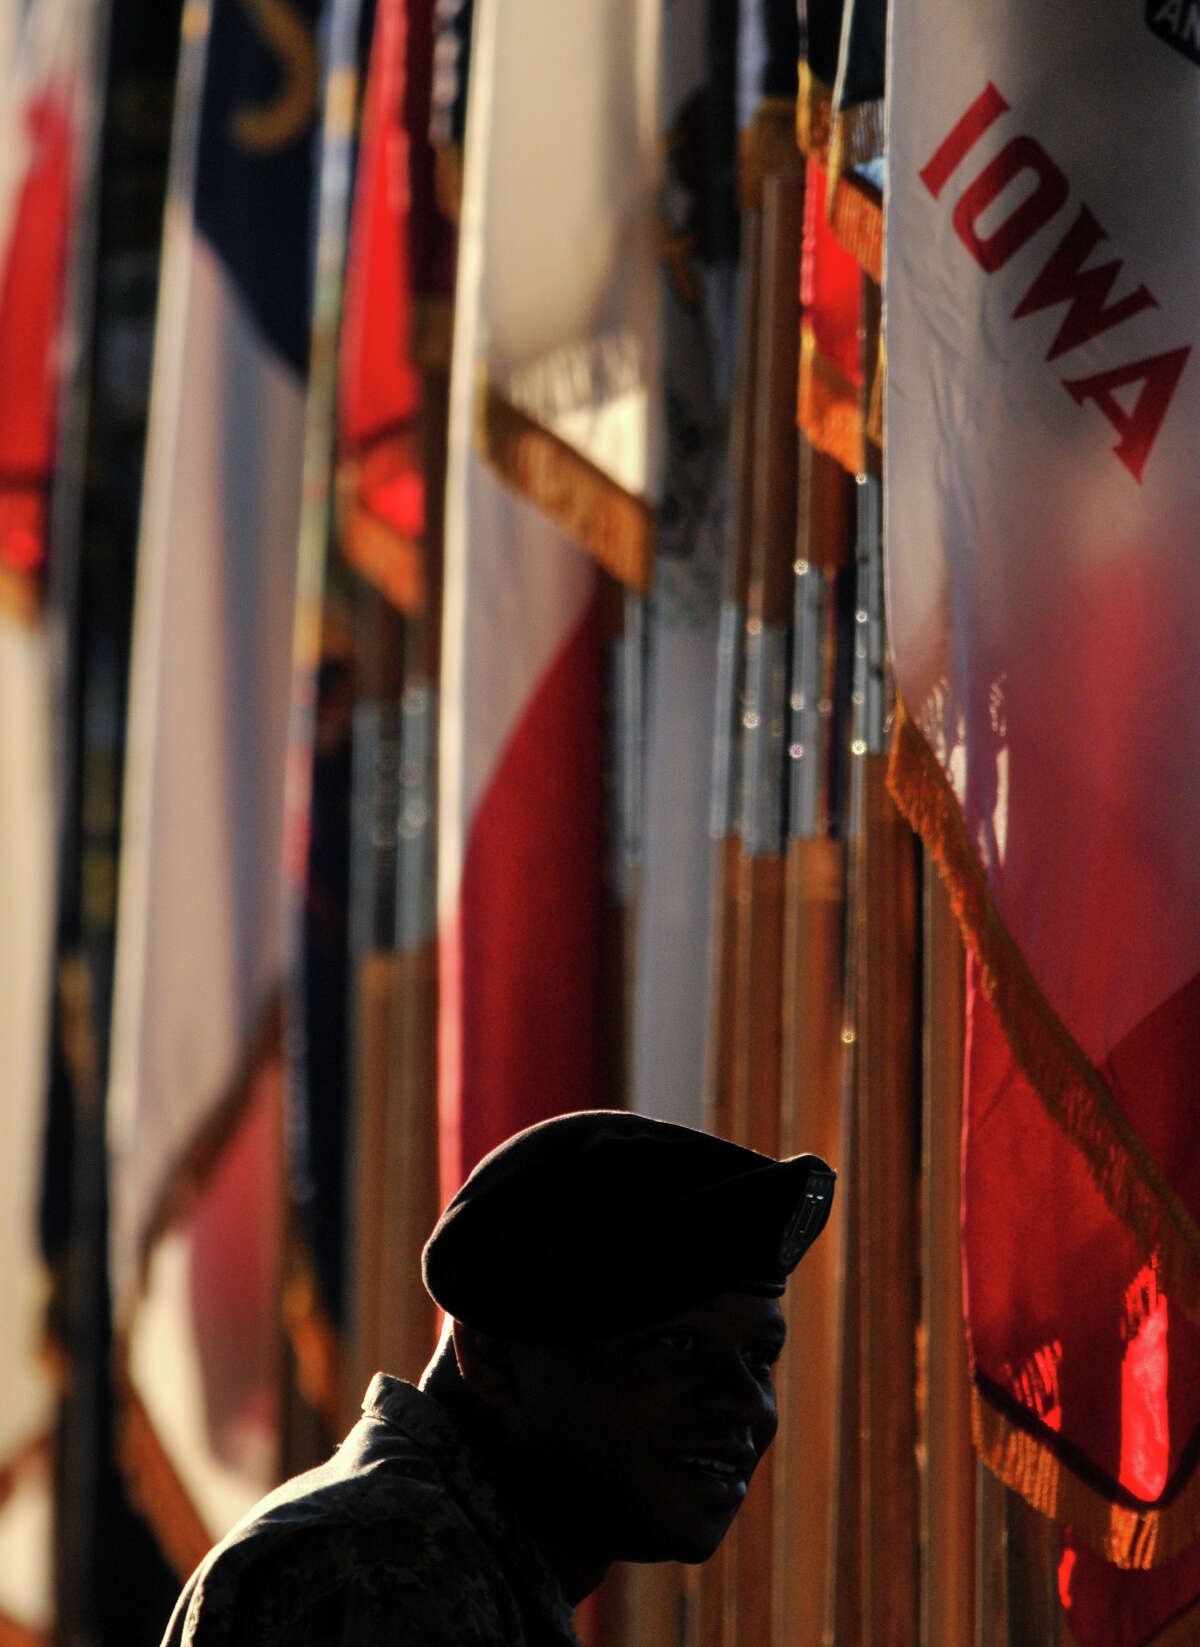 Capt. Preston Roy is silhouetted against flags and early morning light prior to the Relinquishment of Command Ceremony at the U.S. Army Medical Department Center and School at Fort Houston on Friday.